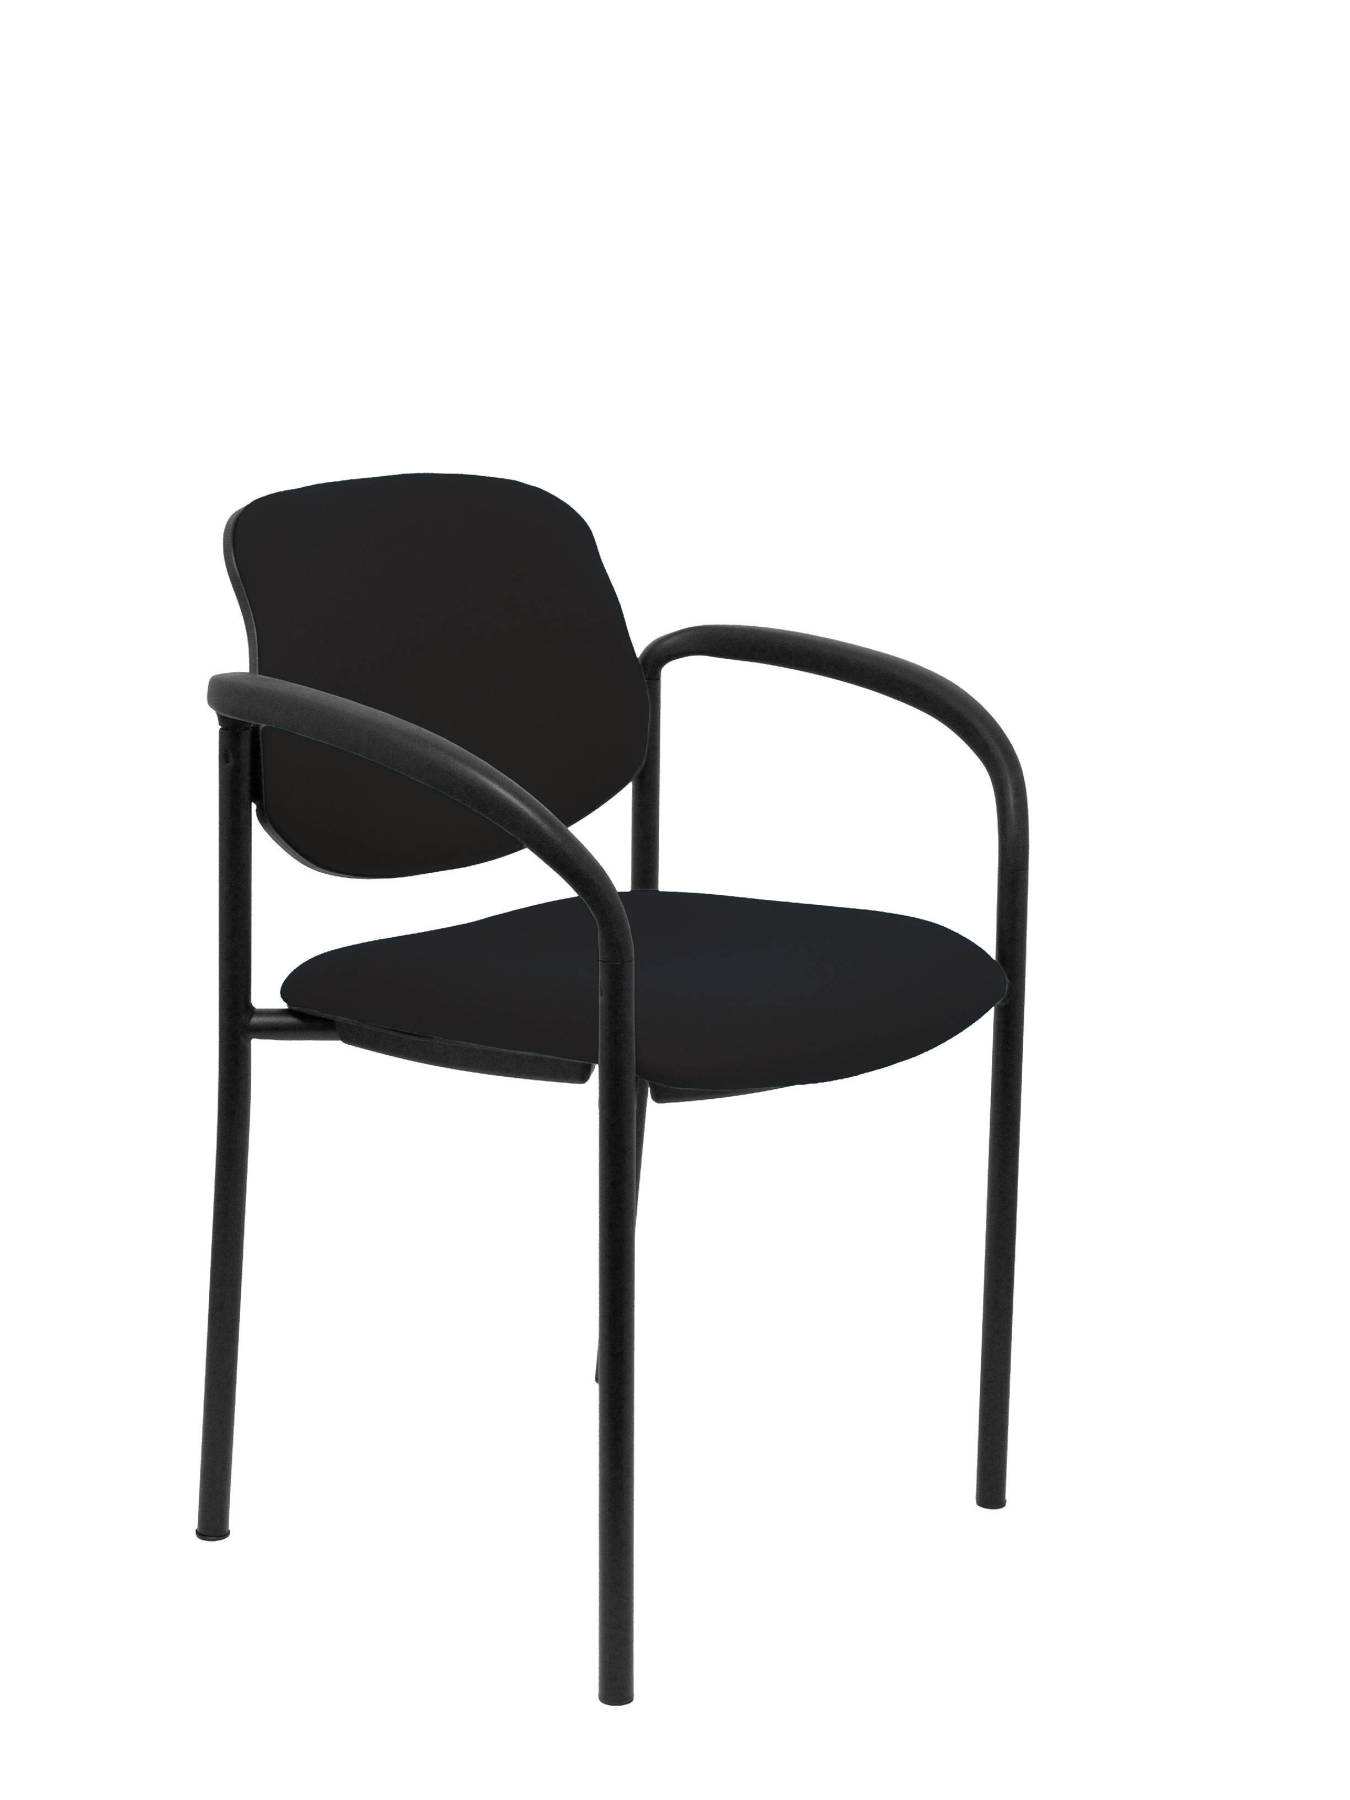 Visitor Chair 4's Topsy, With Arms And Negro-up Seat And Backstop Structure Upholstered In BALI Tissue Color Black PIQ